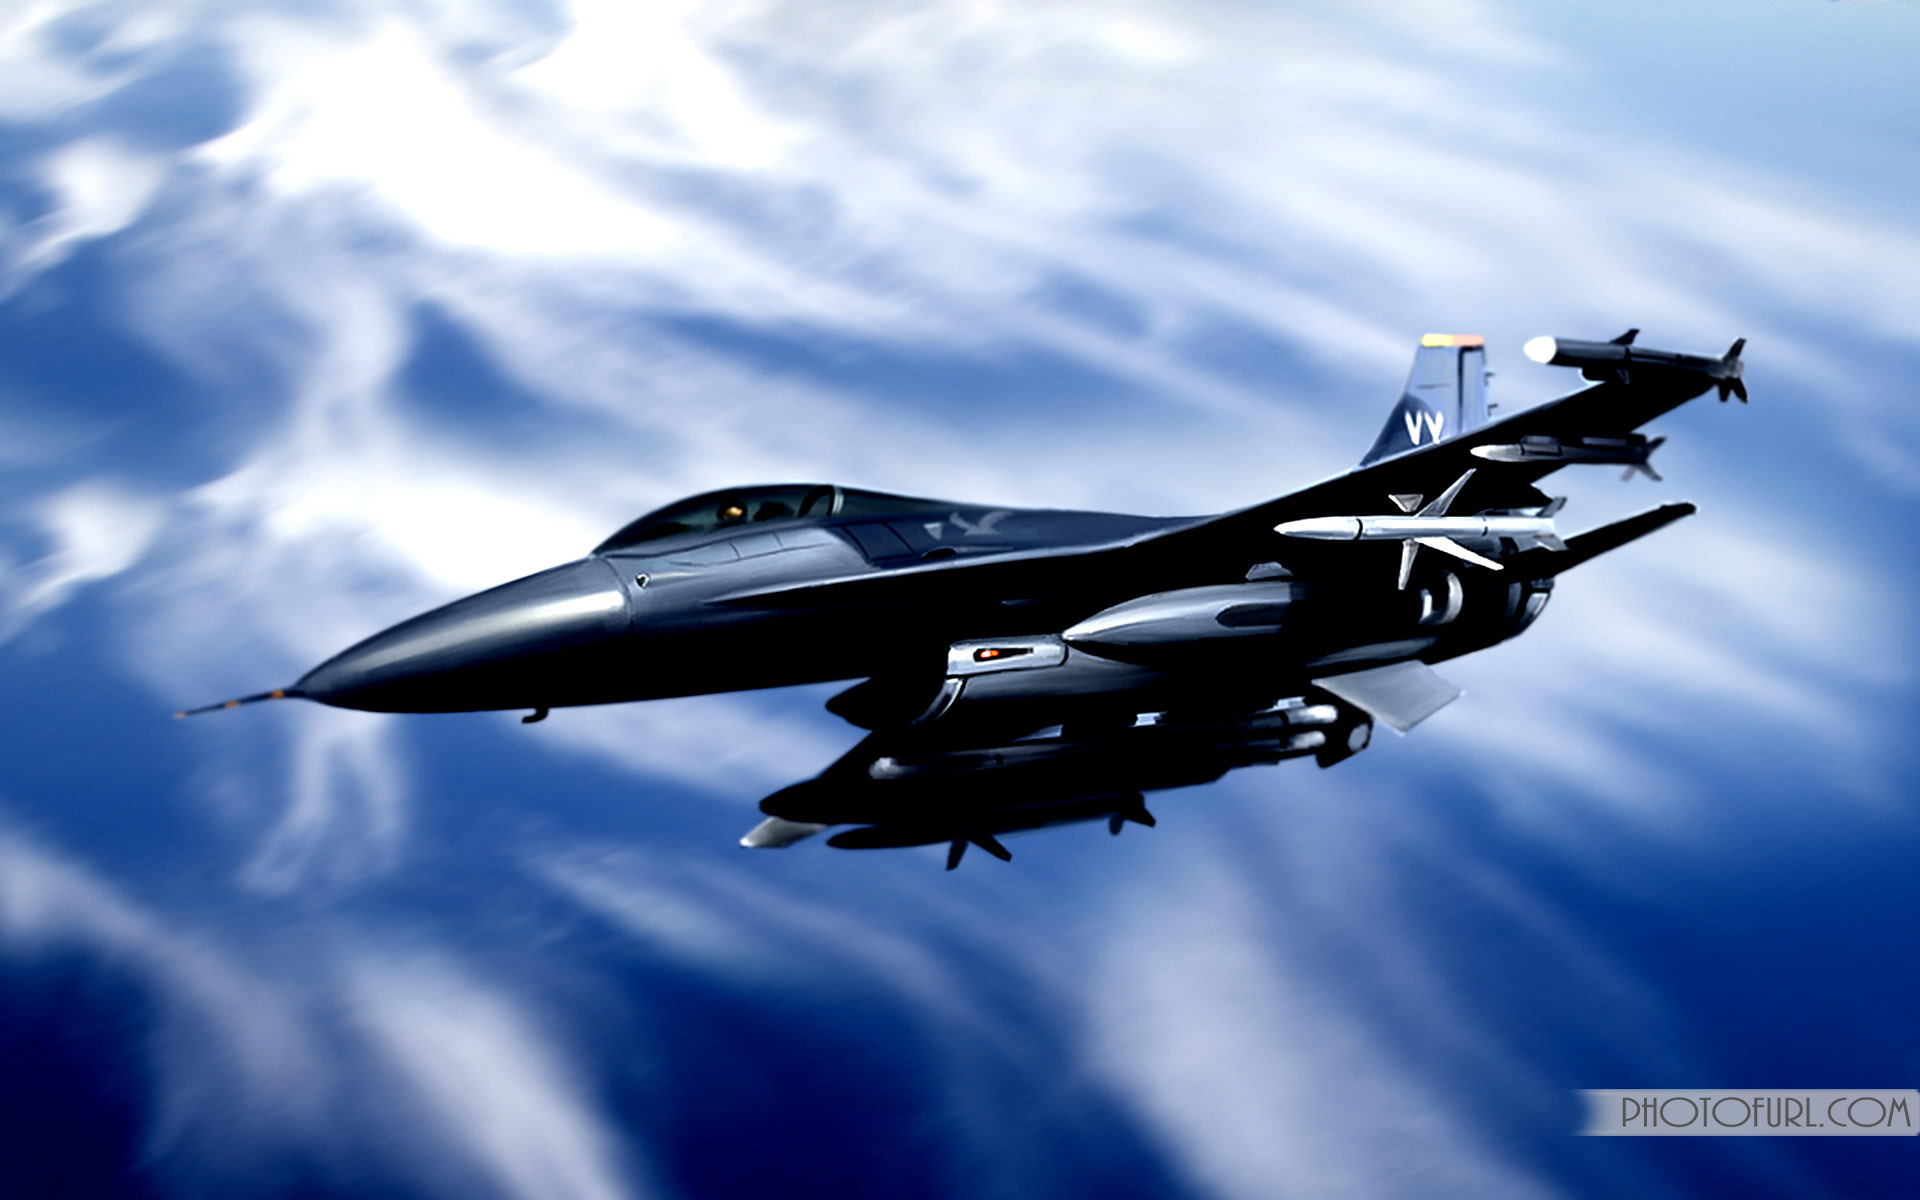 Airforce Fighter Aircraft Wallpapers Hd Wallpapers 1920x1200